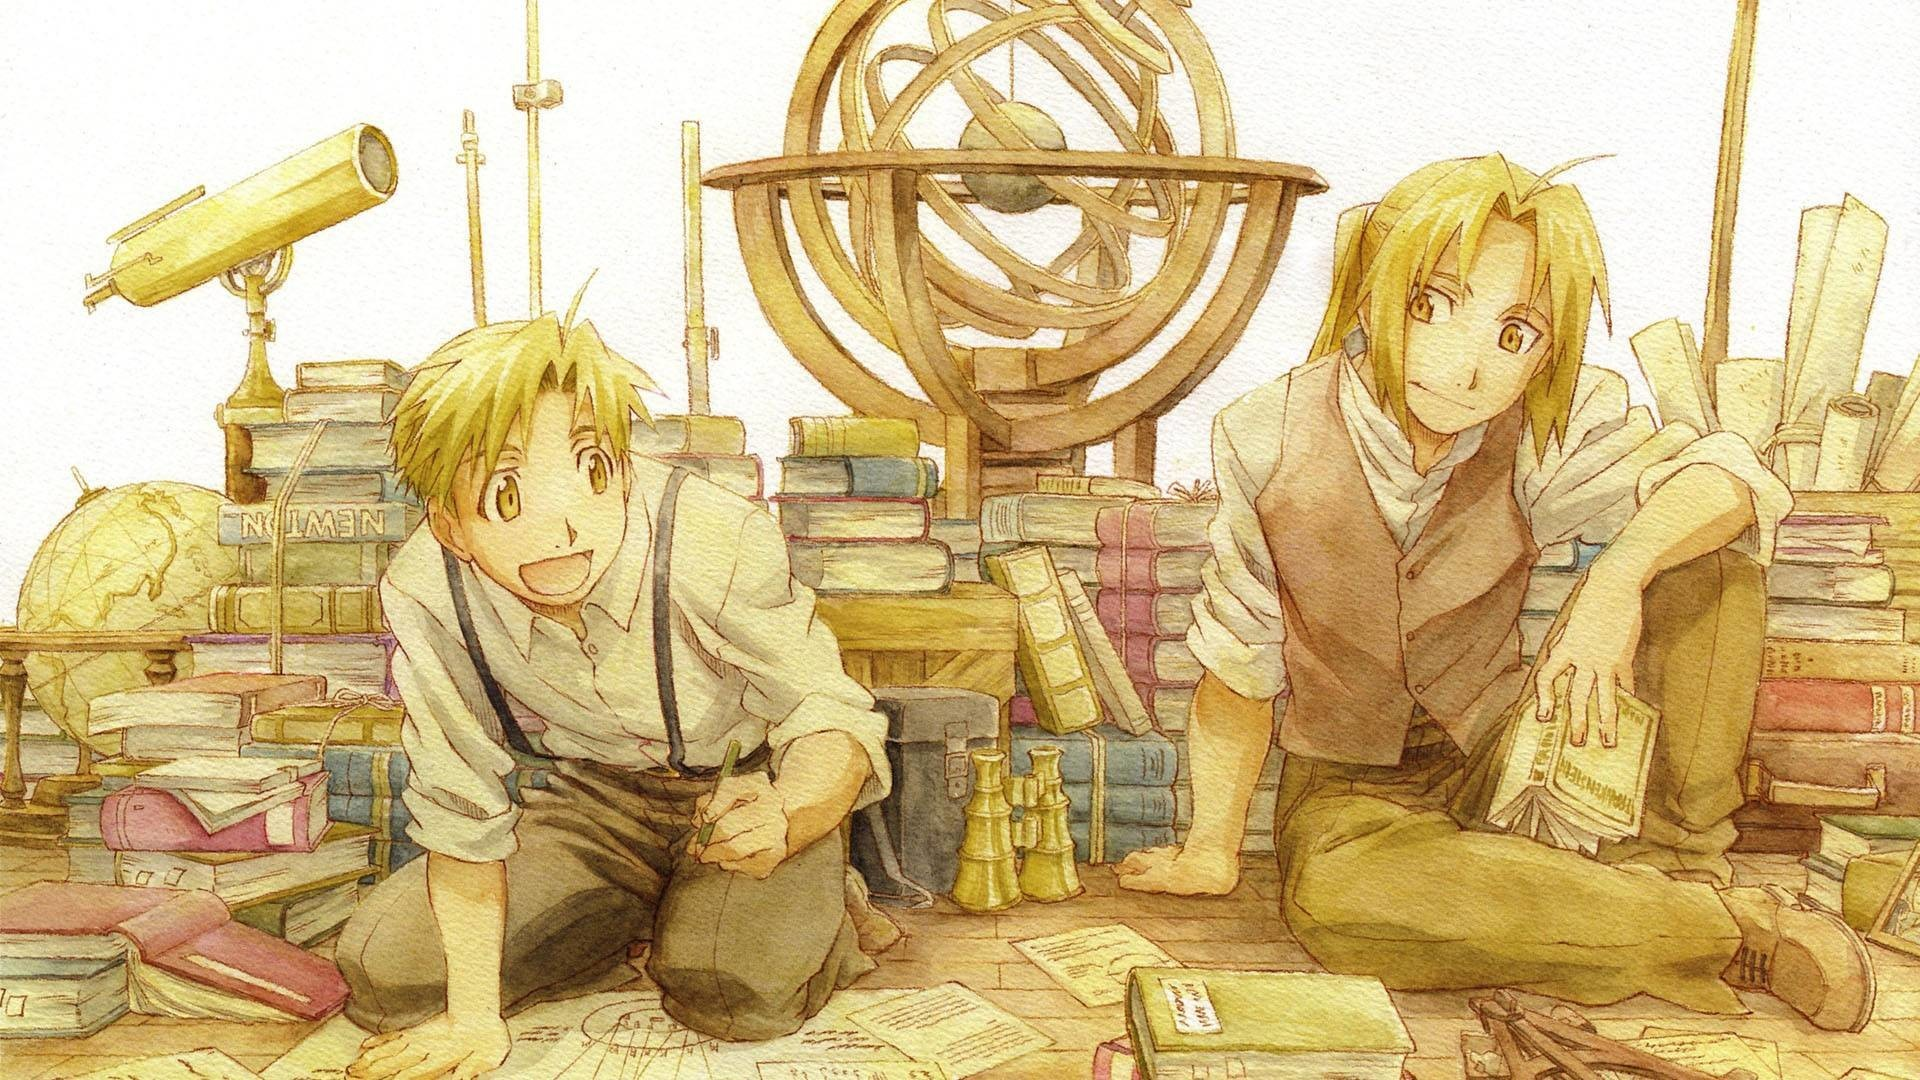 Res: 1920x1080, fullmetal alchemist brotherhood wallpapers ...